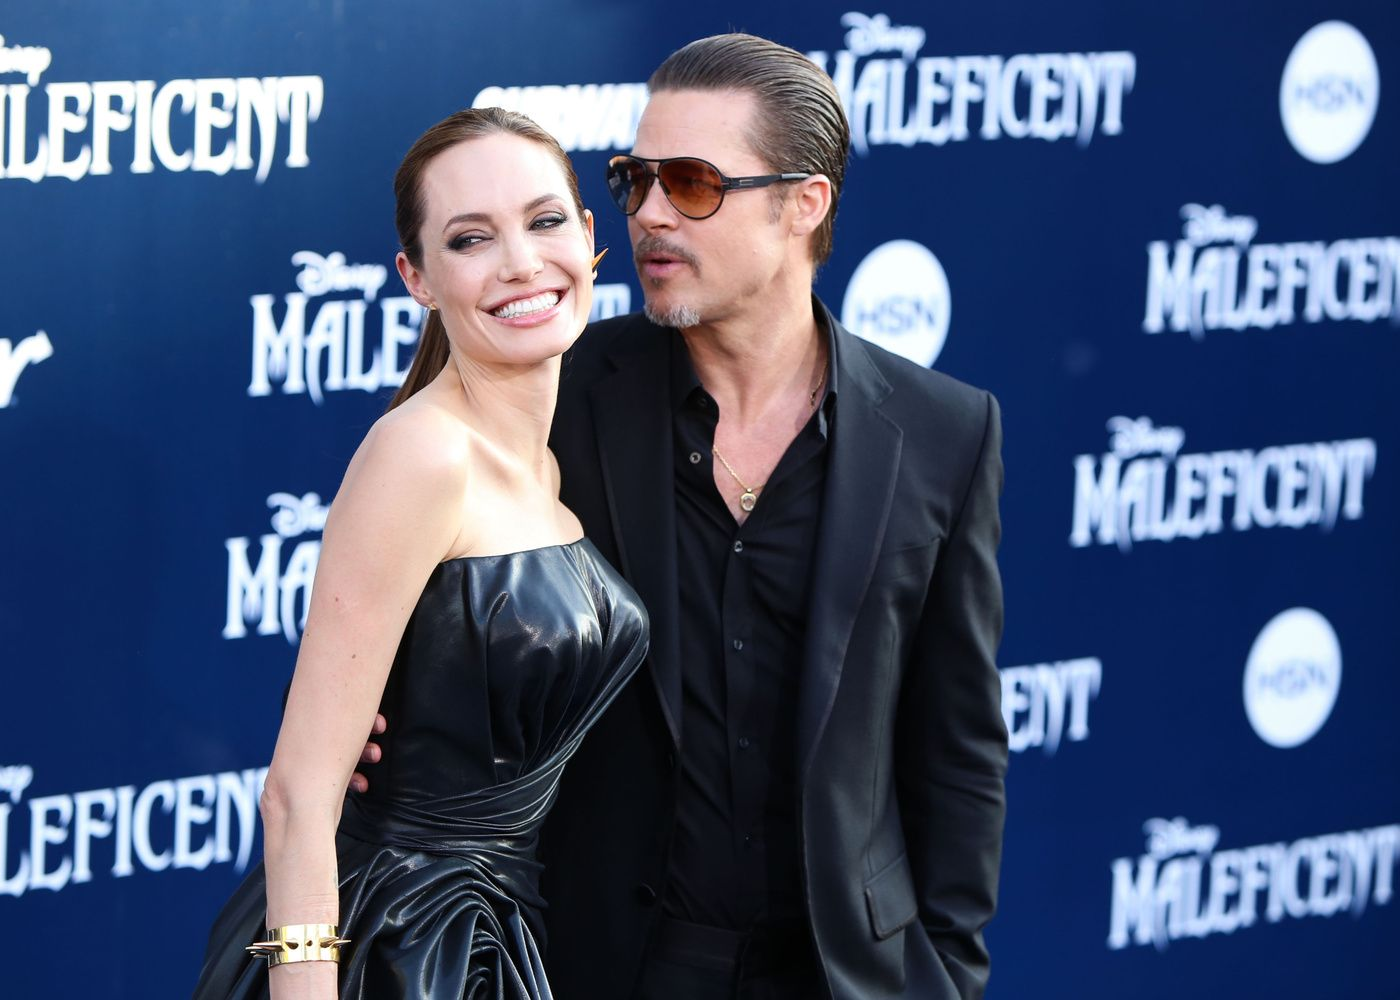 On Aug. 23, two years after getting engaged, Brad Pitt and Angelina Jolie wed in a secret ceremony in the chapel of Château Miraval, the couple's estate in Correns, France. Jolie wore a gown decorated with artwork from her six kids and was escorted down the aisle by oldest sons Maddox and Pax. Also playing their parts, Zahara and Vivienne were flower girls and Shiloh and Knox were ring bearers.